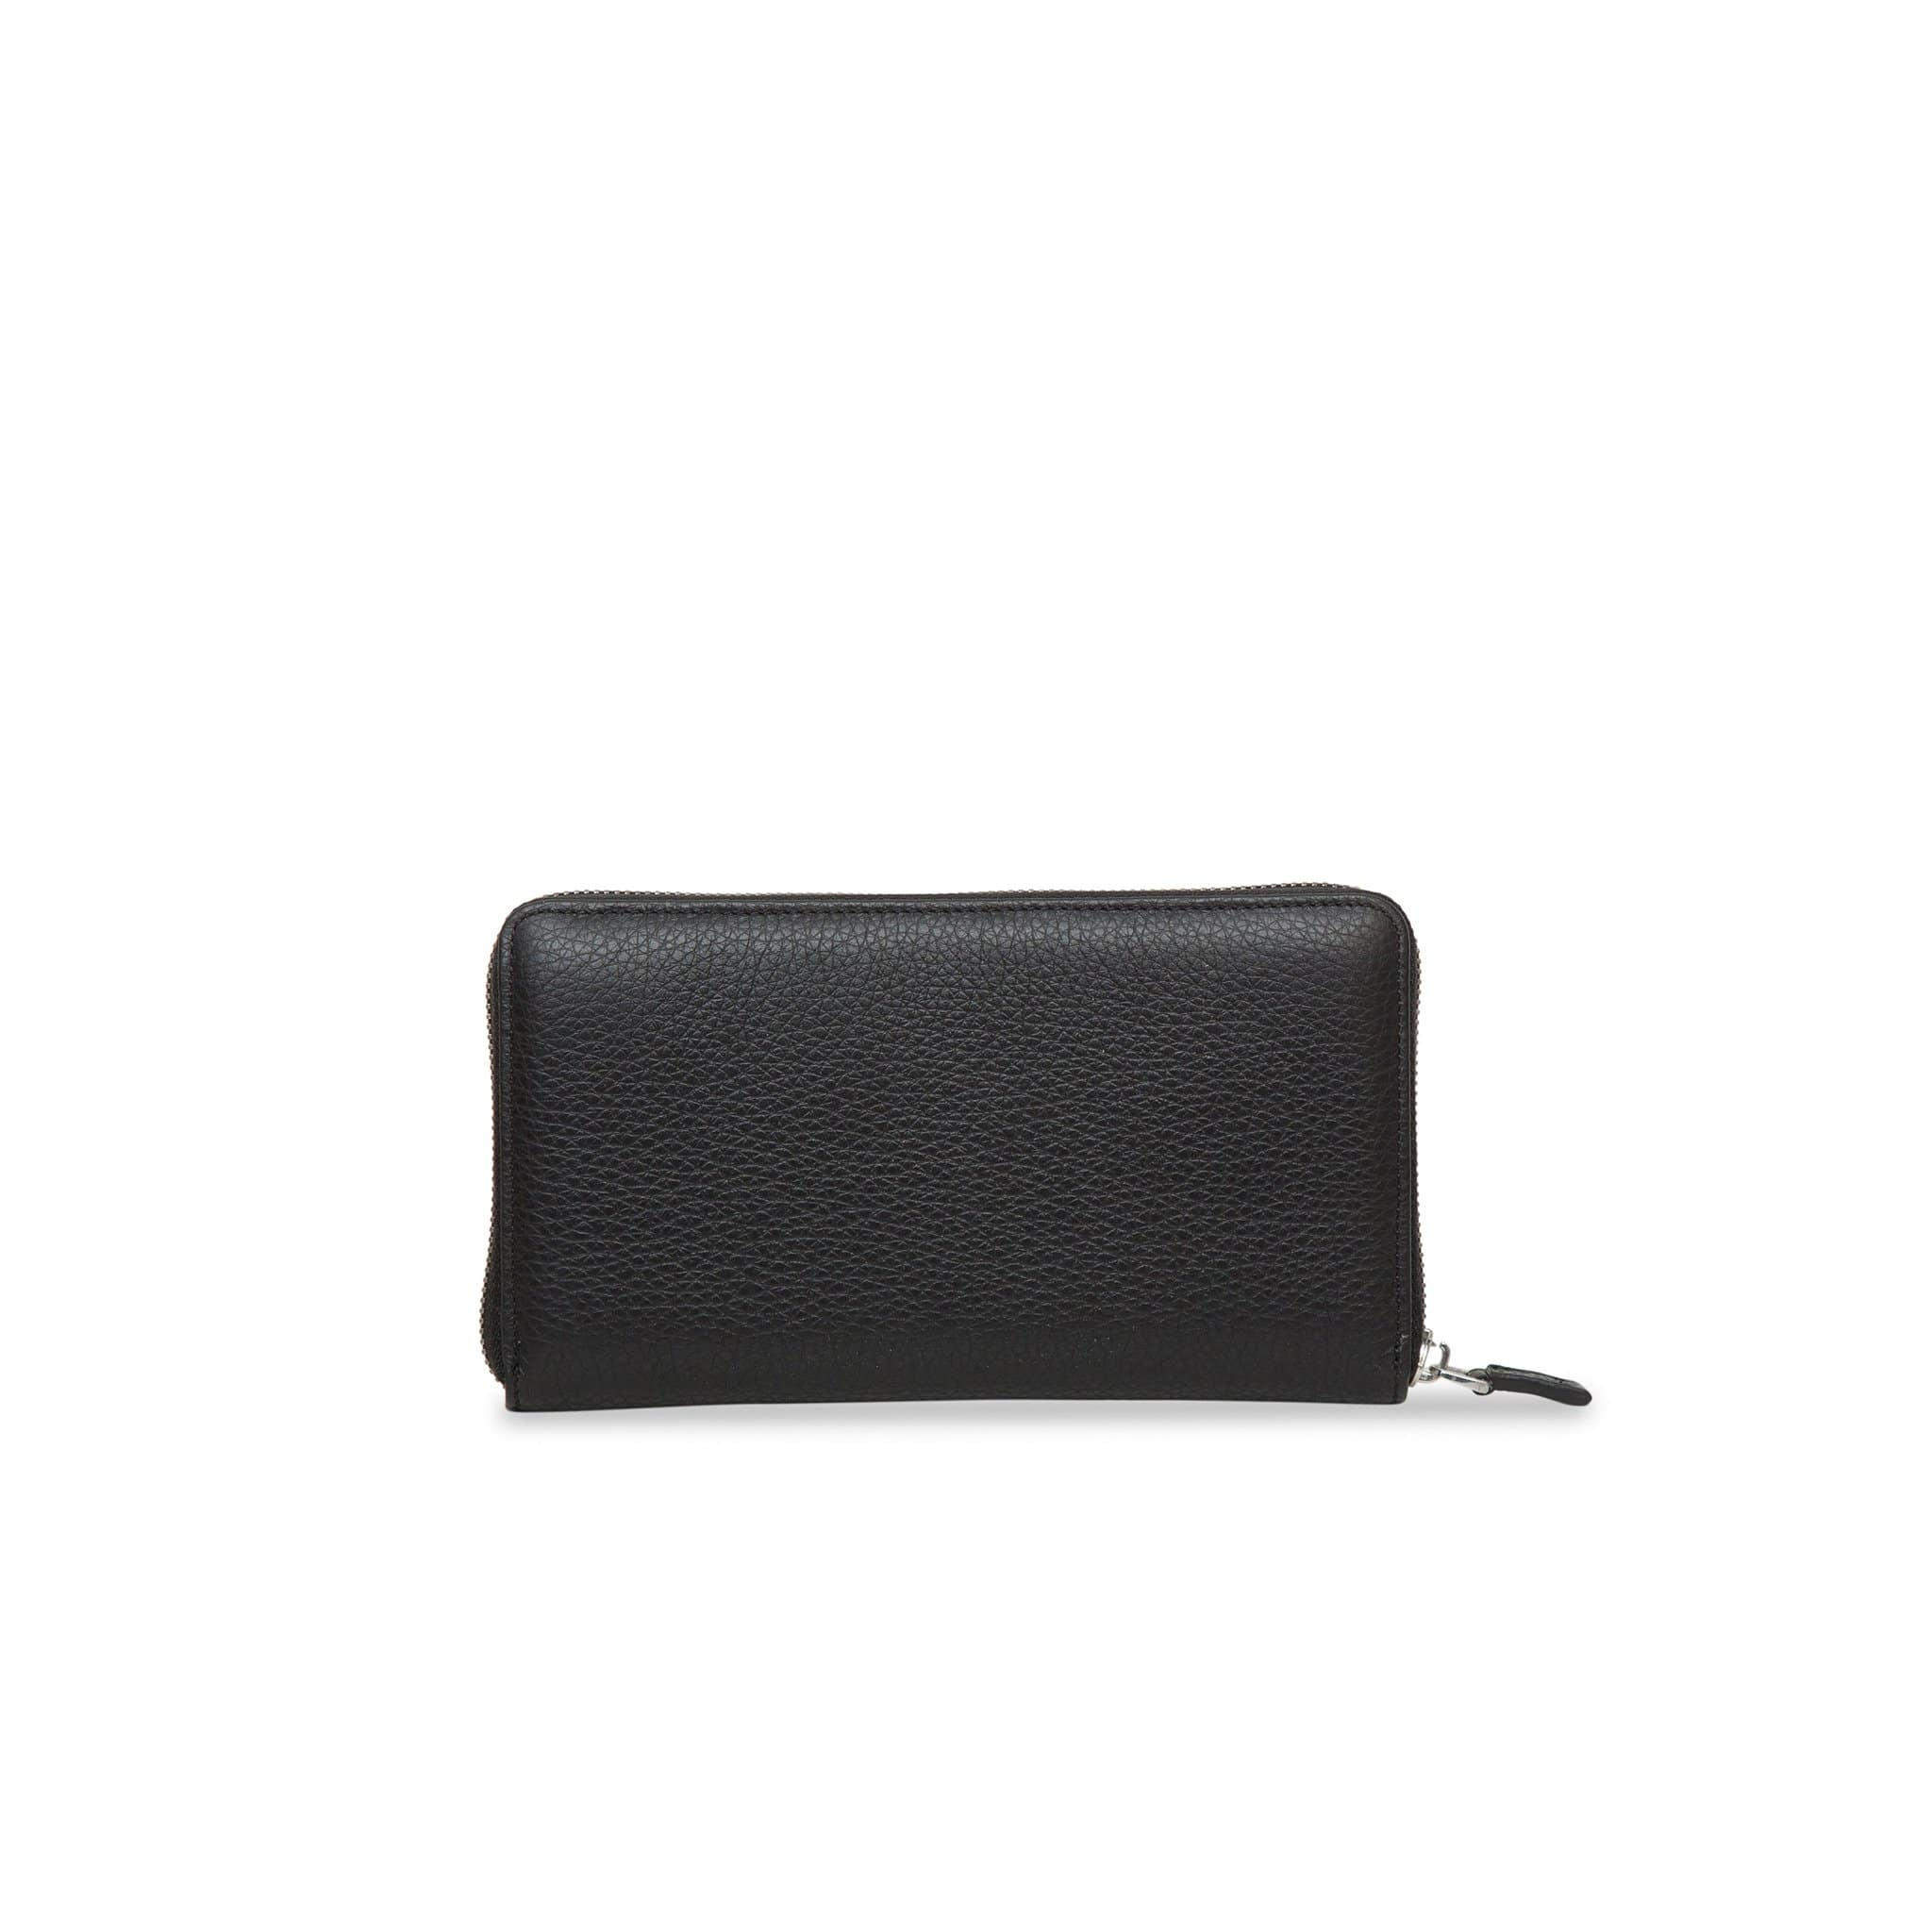 Black Zip Around leather Rock Wallet